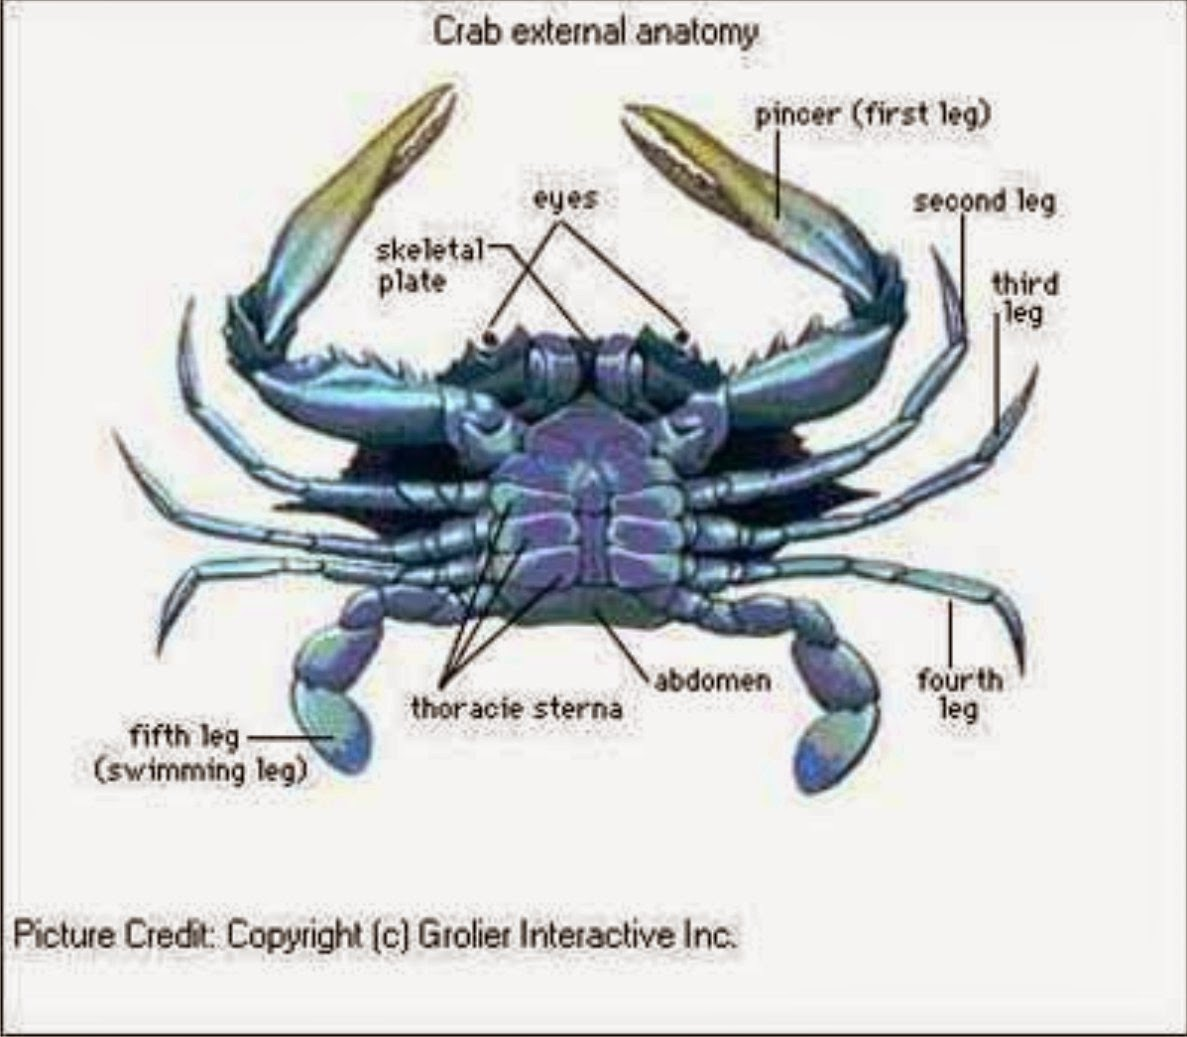 Blue crab diagram - crazywidow.info